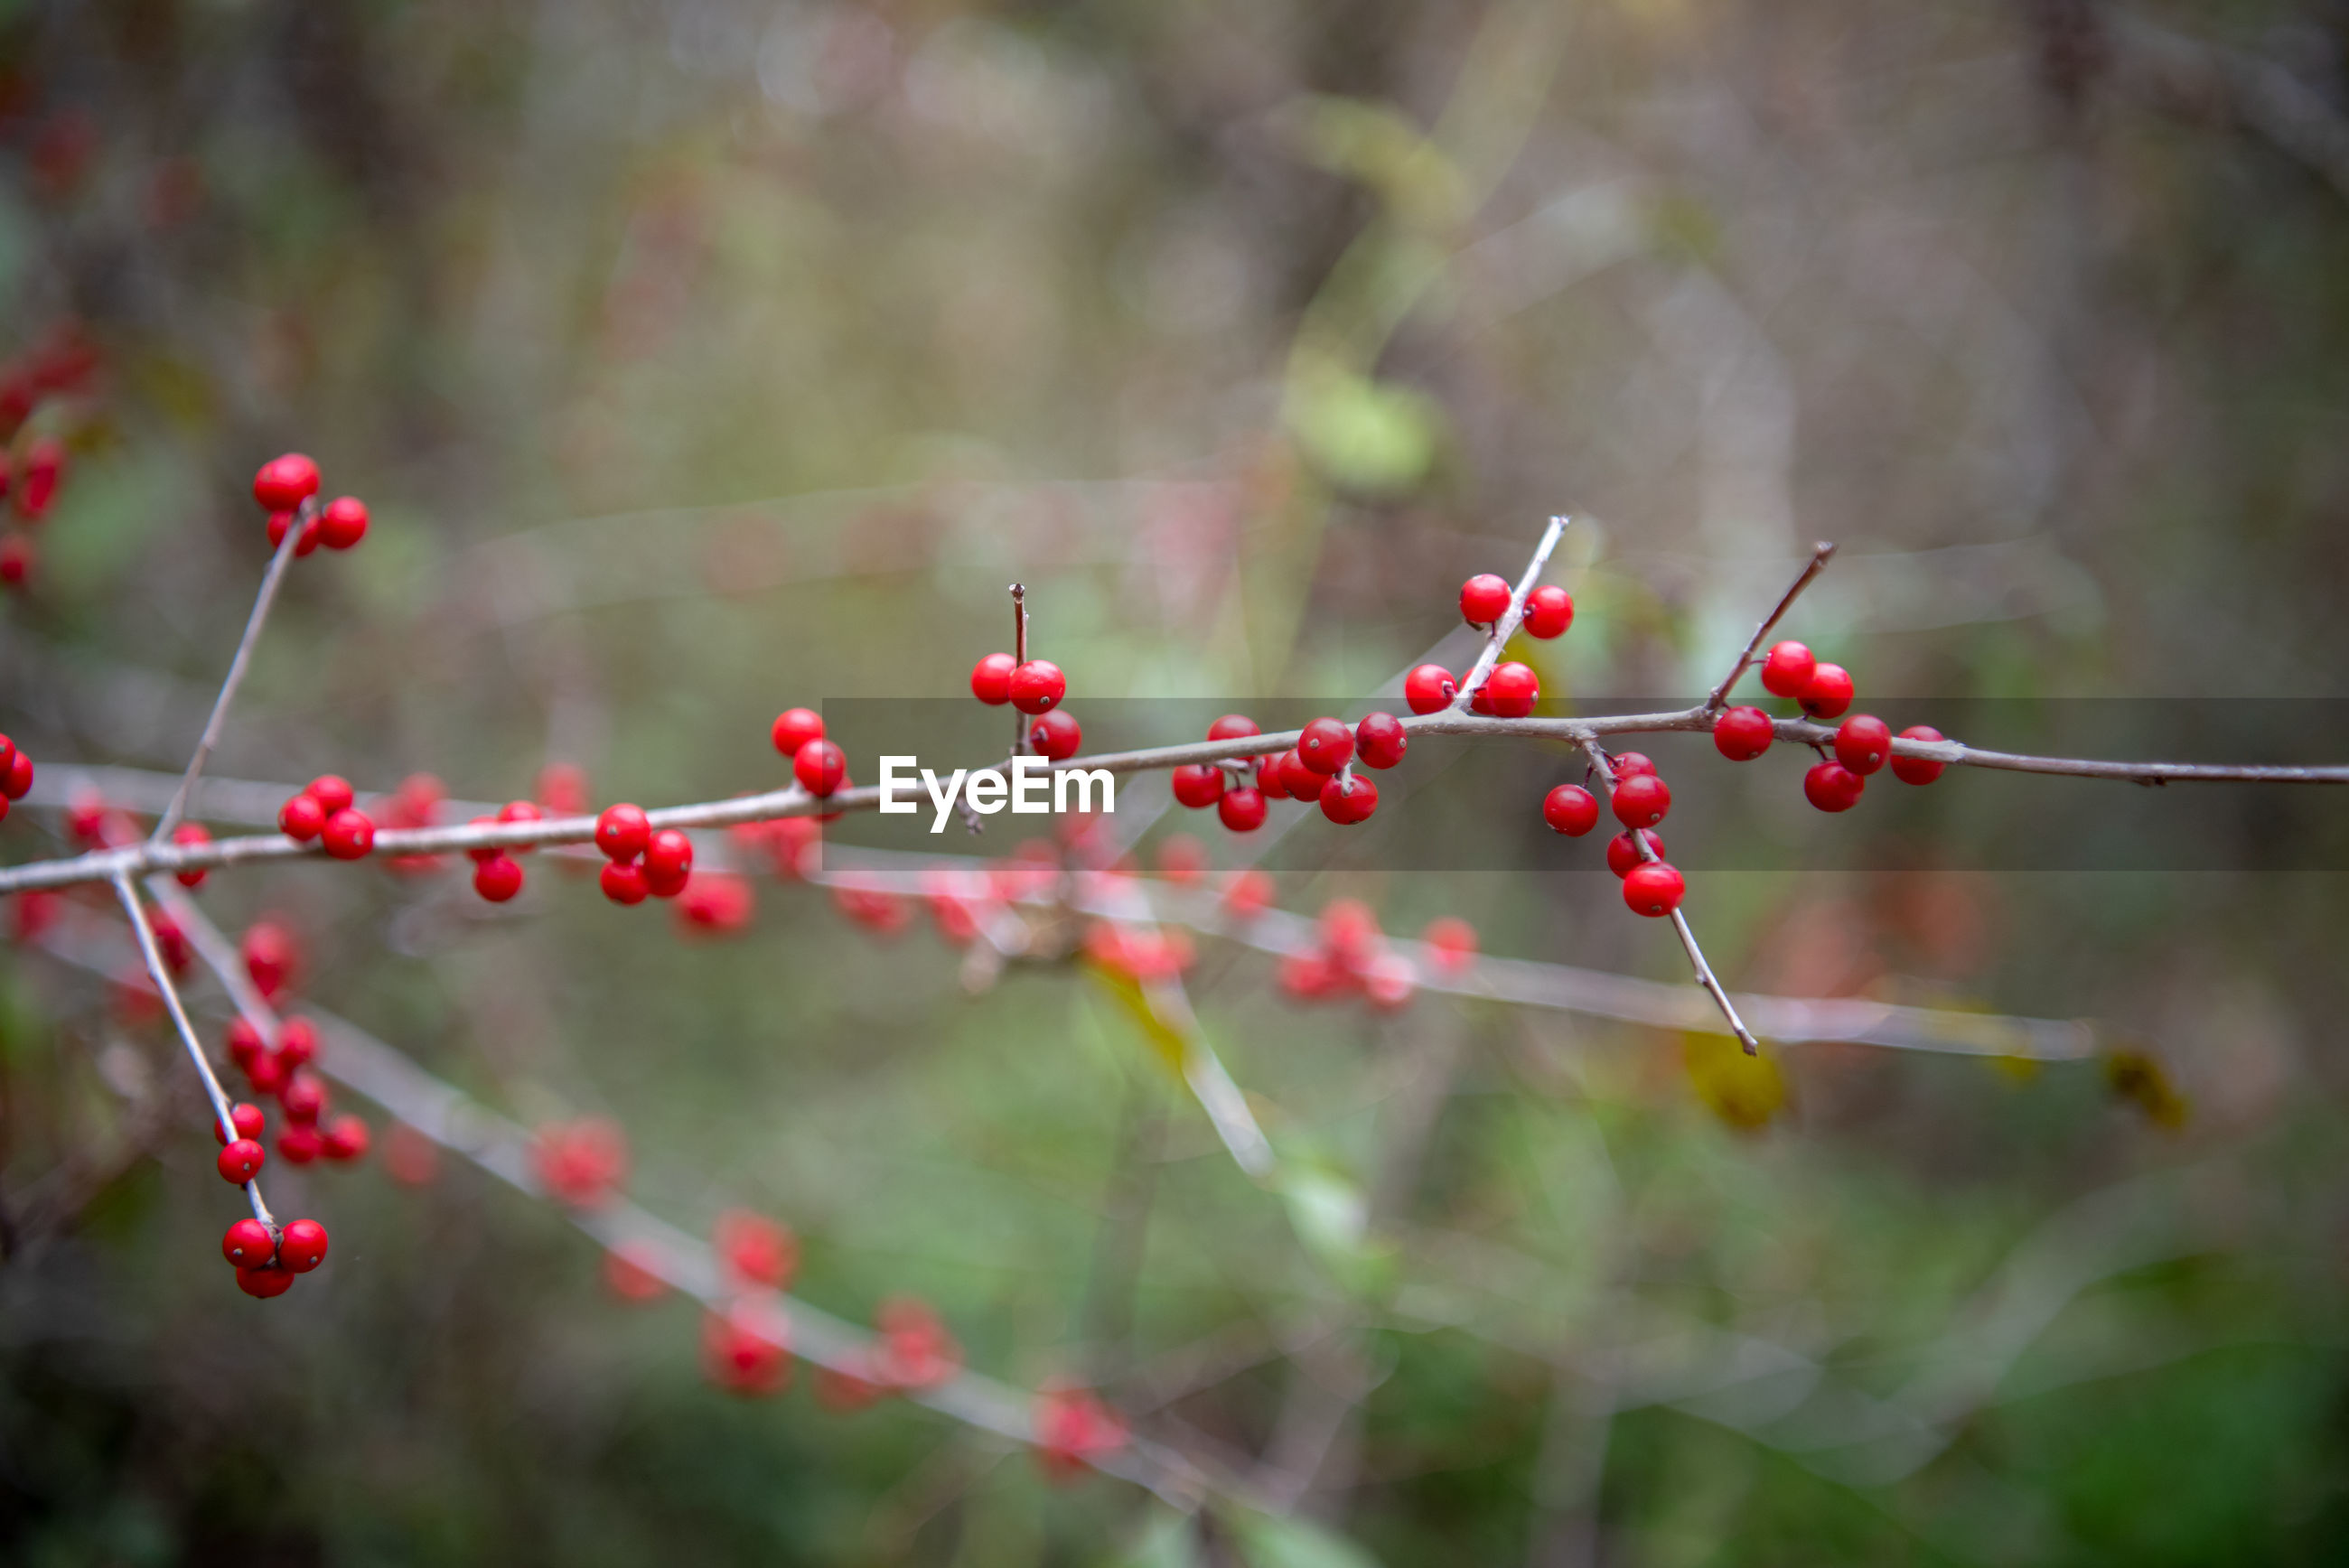 CLOSE-UP OF RED BERRIES HANGING ON TREE